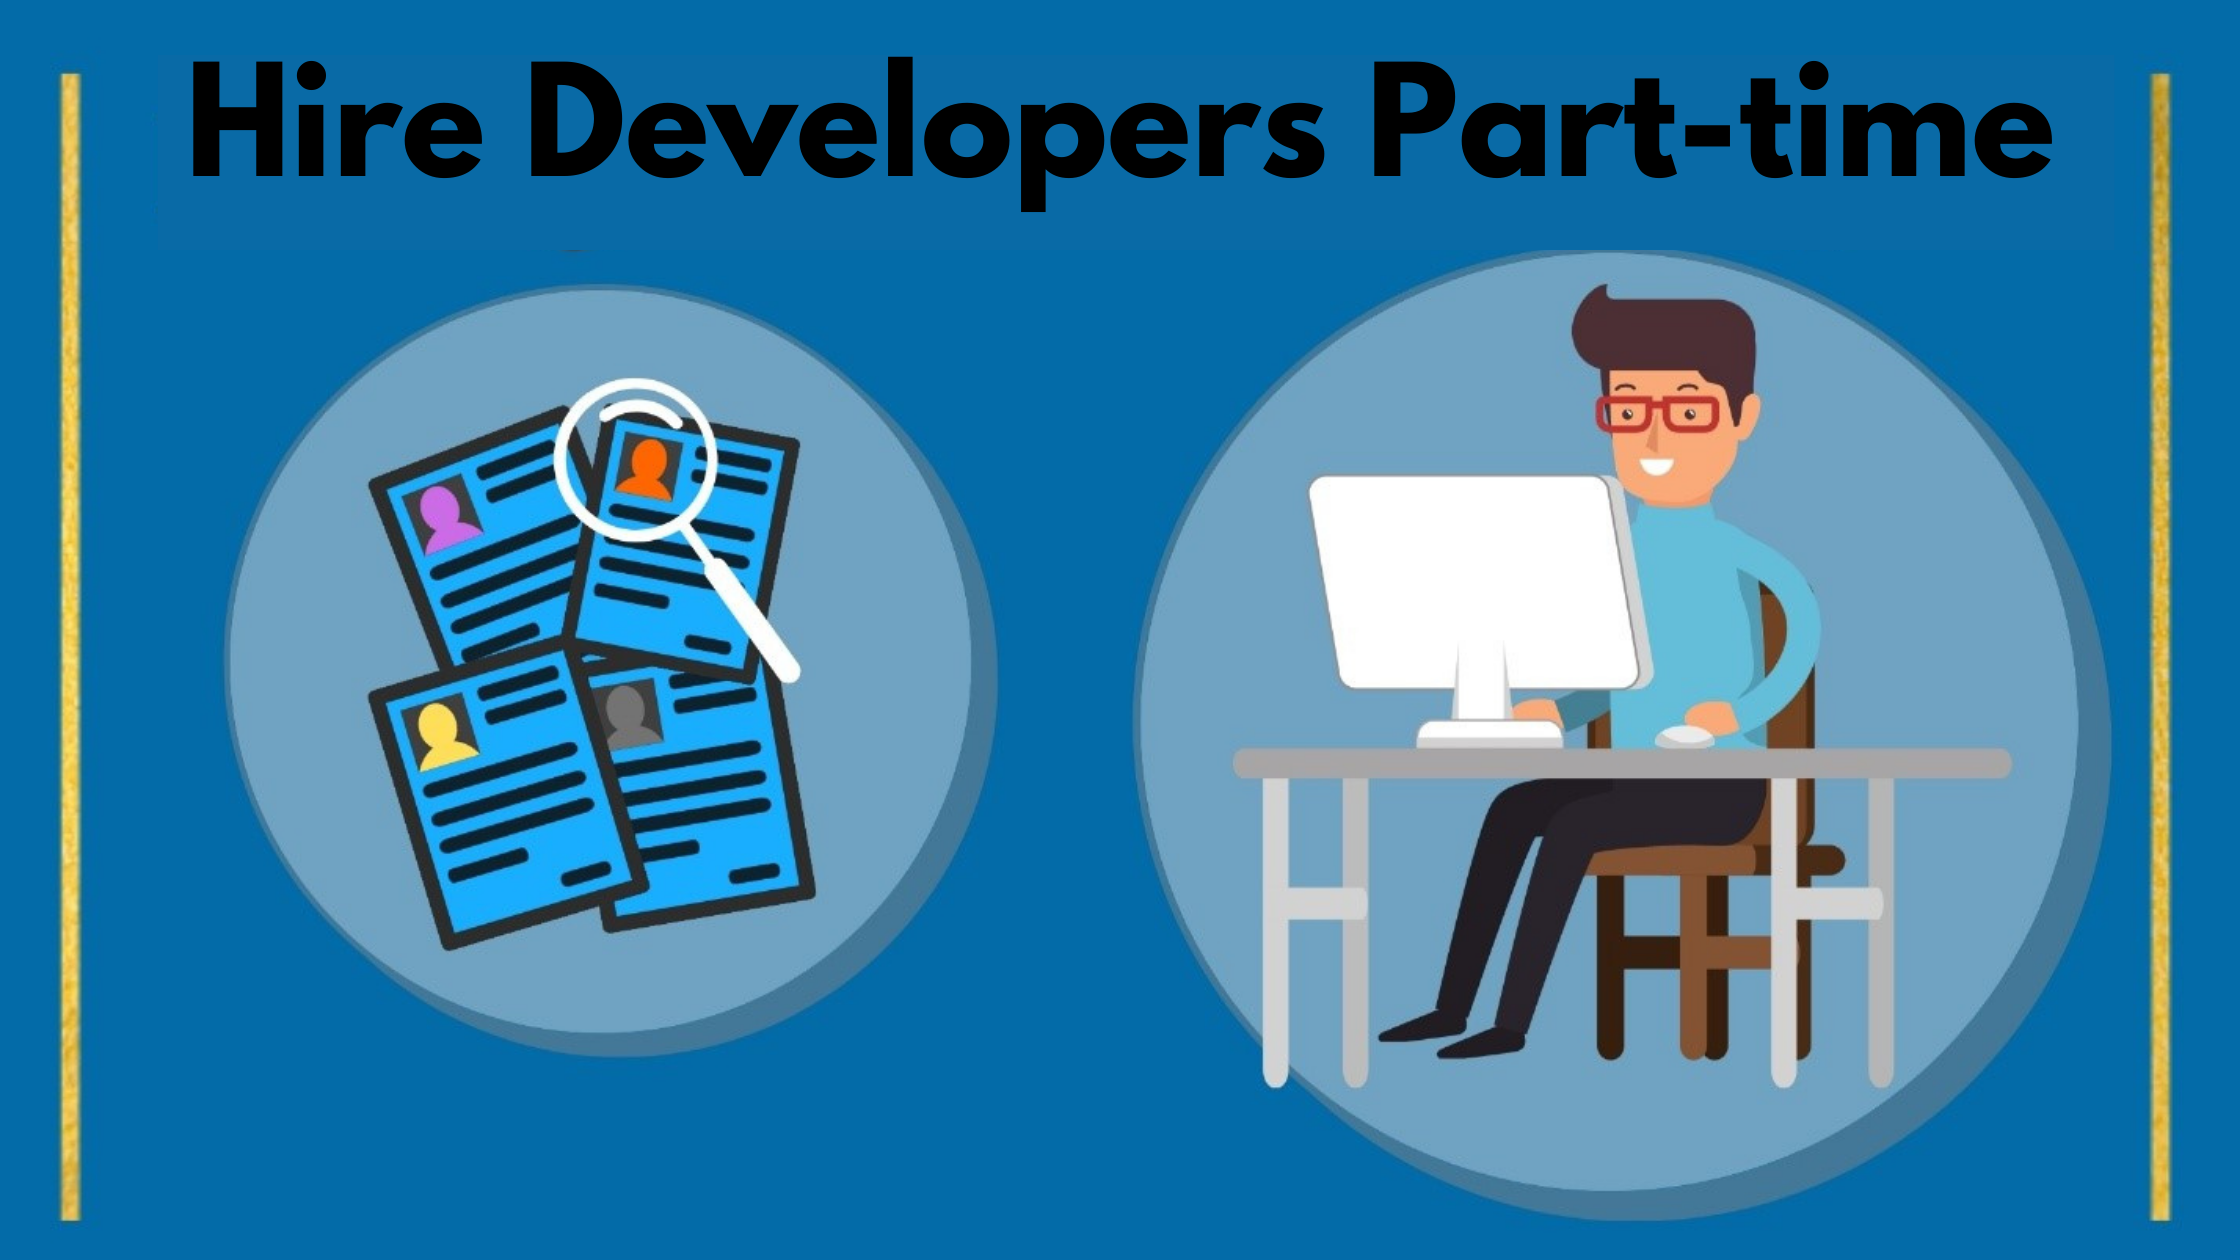 How to find Web Development Gigs